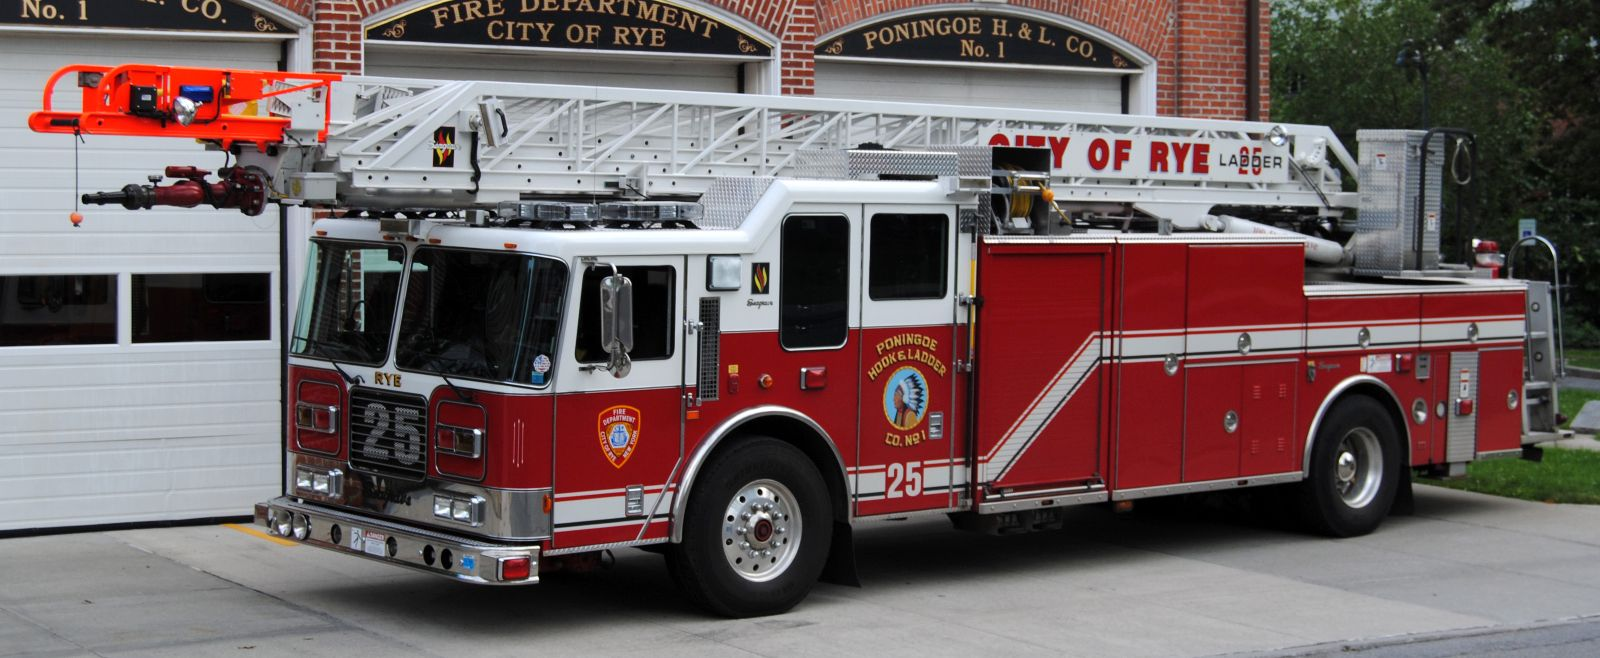 Rye Fire Department Serving The City Of Rye New York